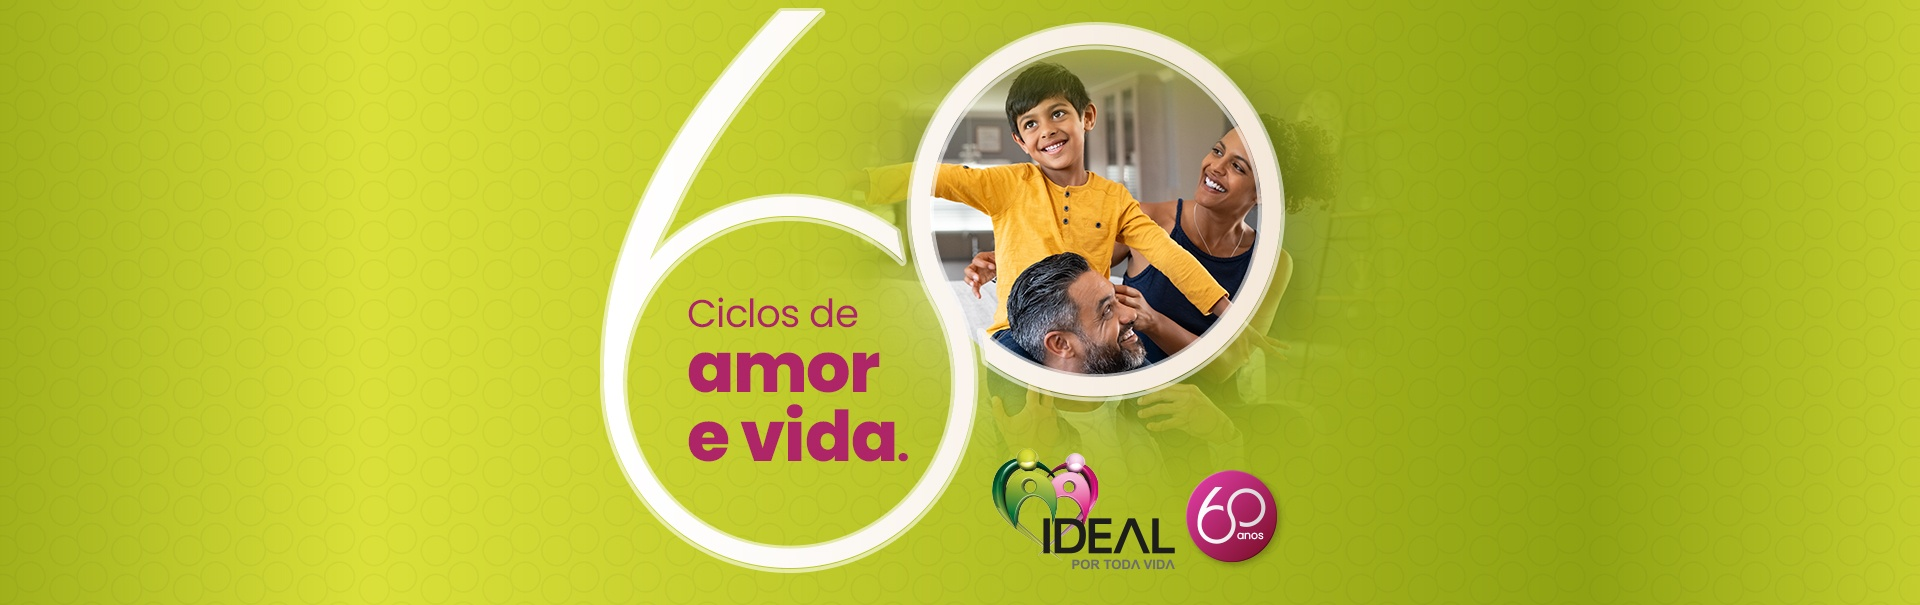 60 anos Rede Ideal